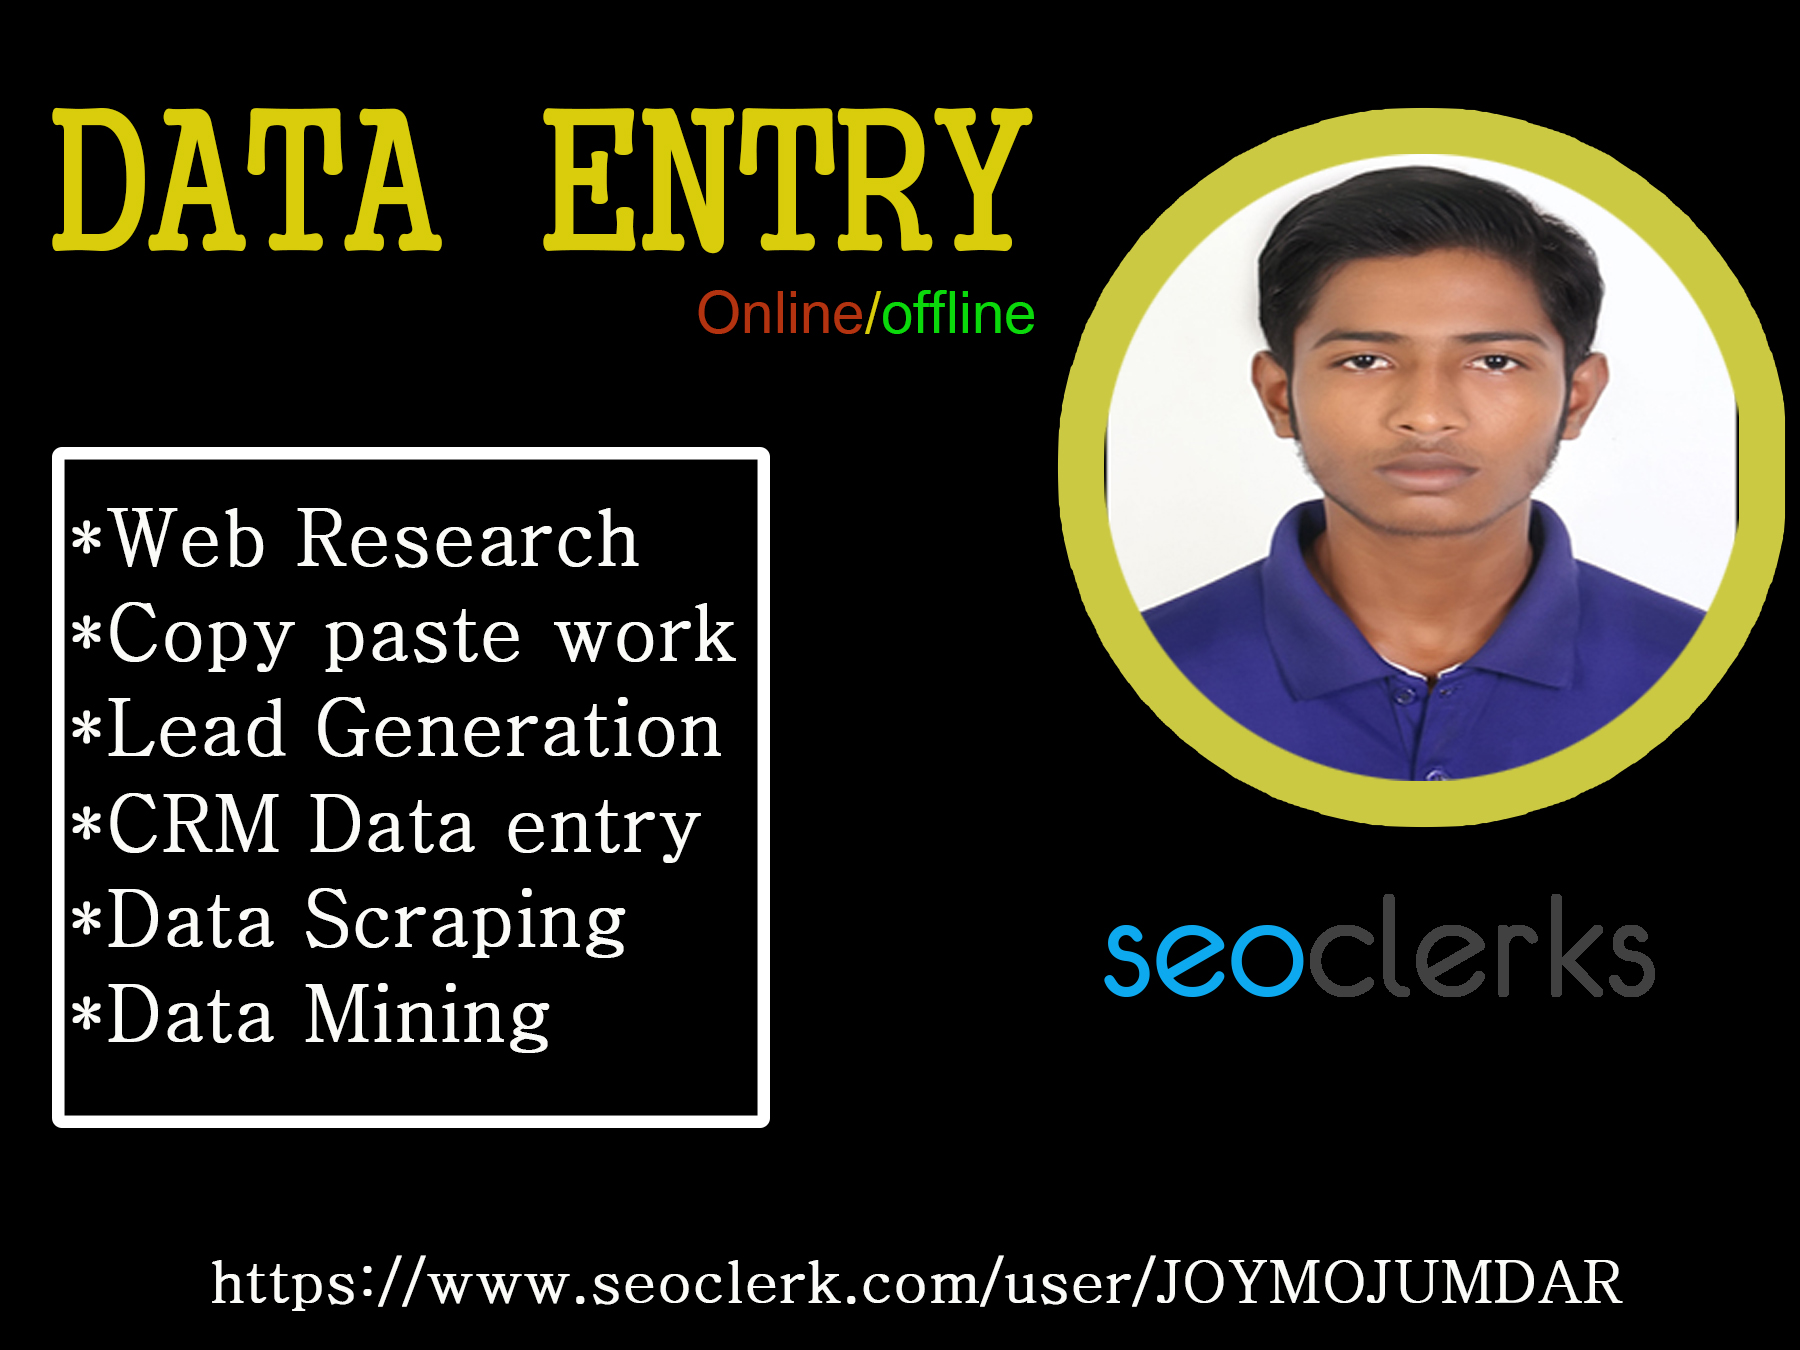 Do data entry, internet research and data analysis